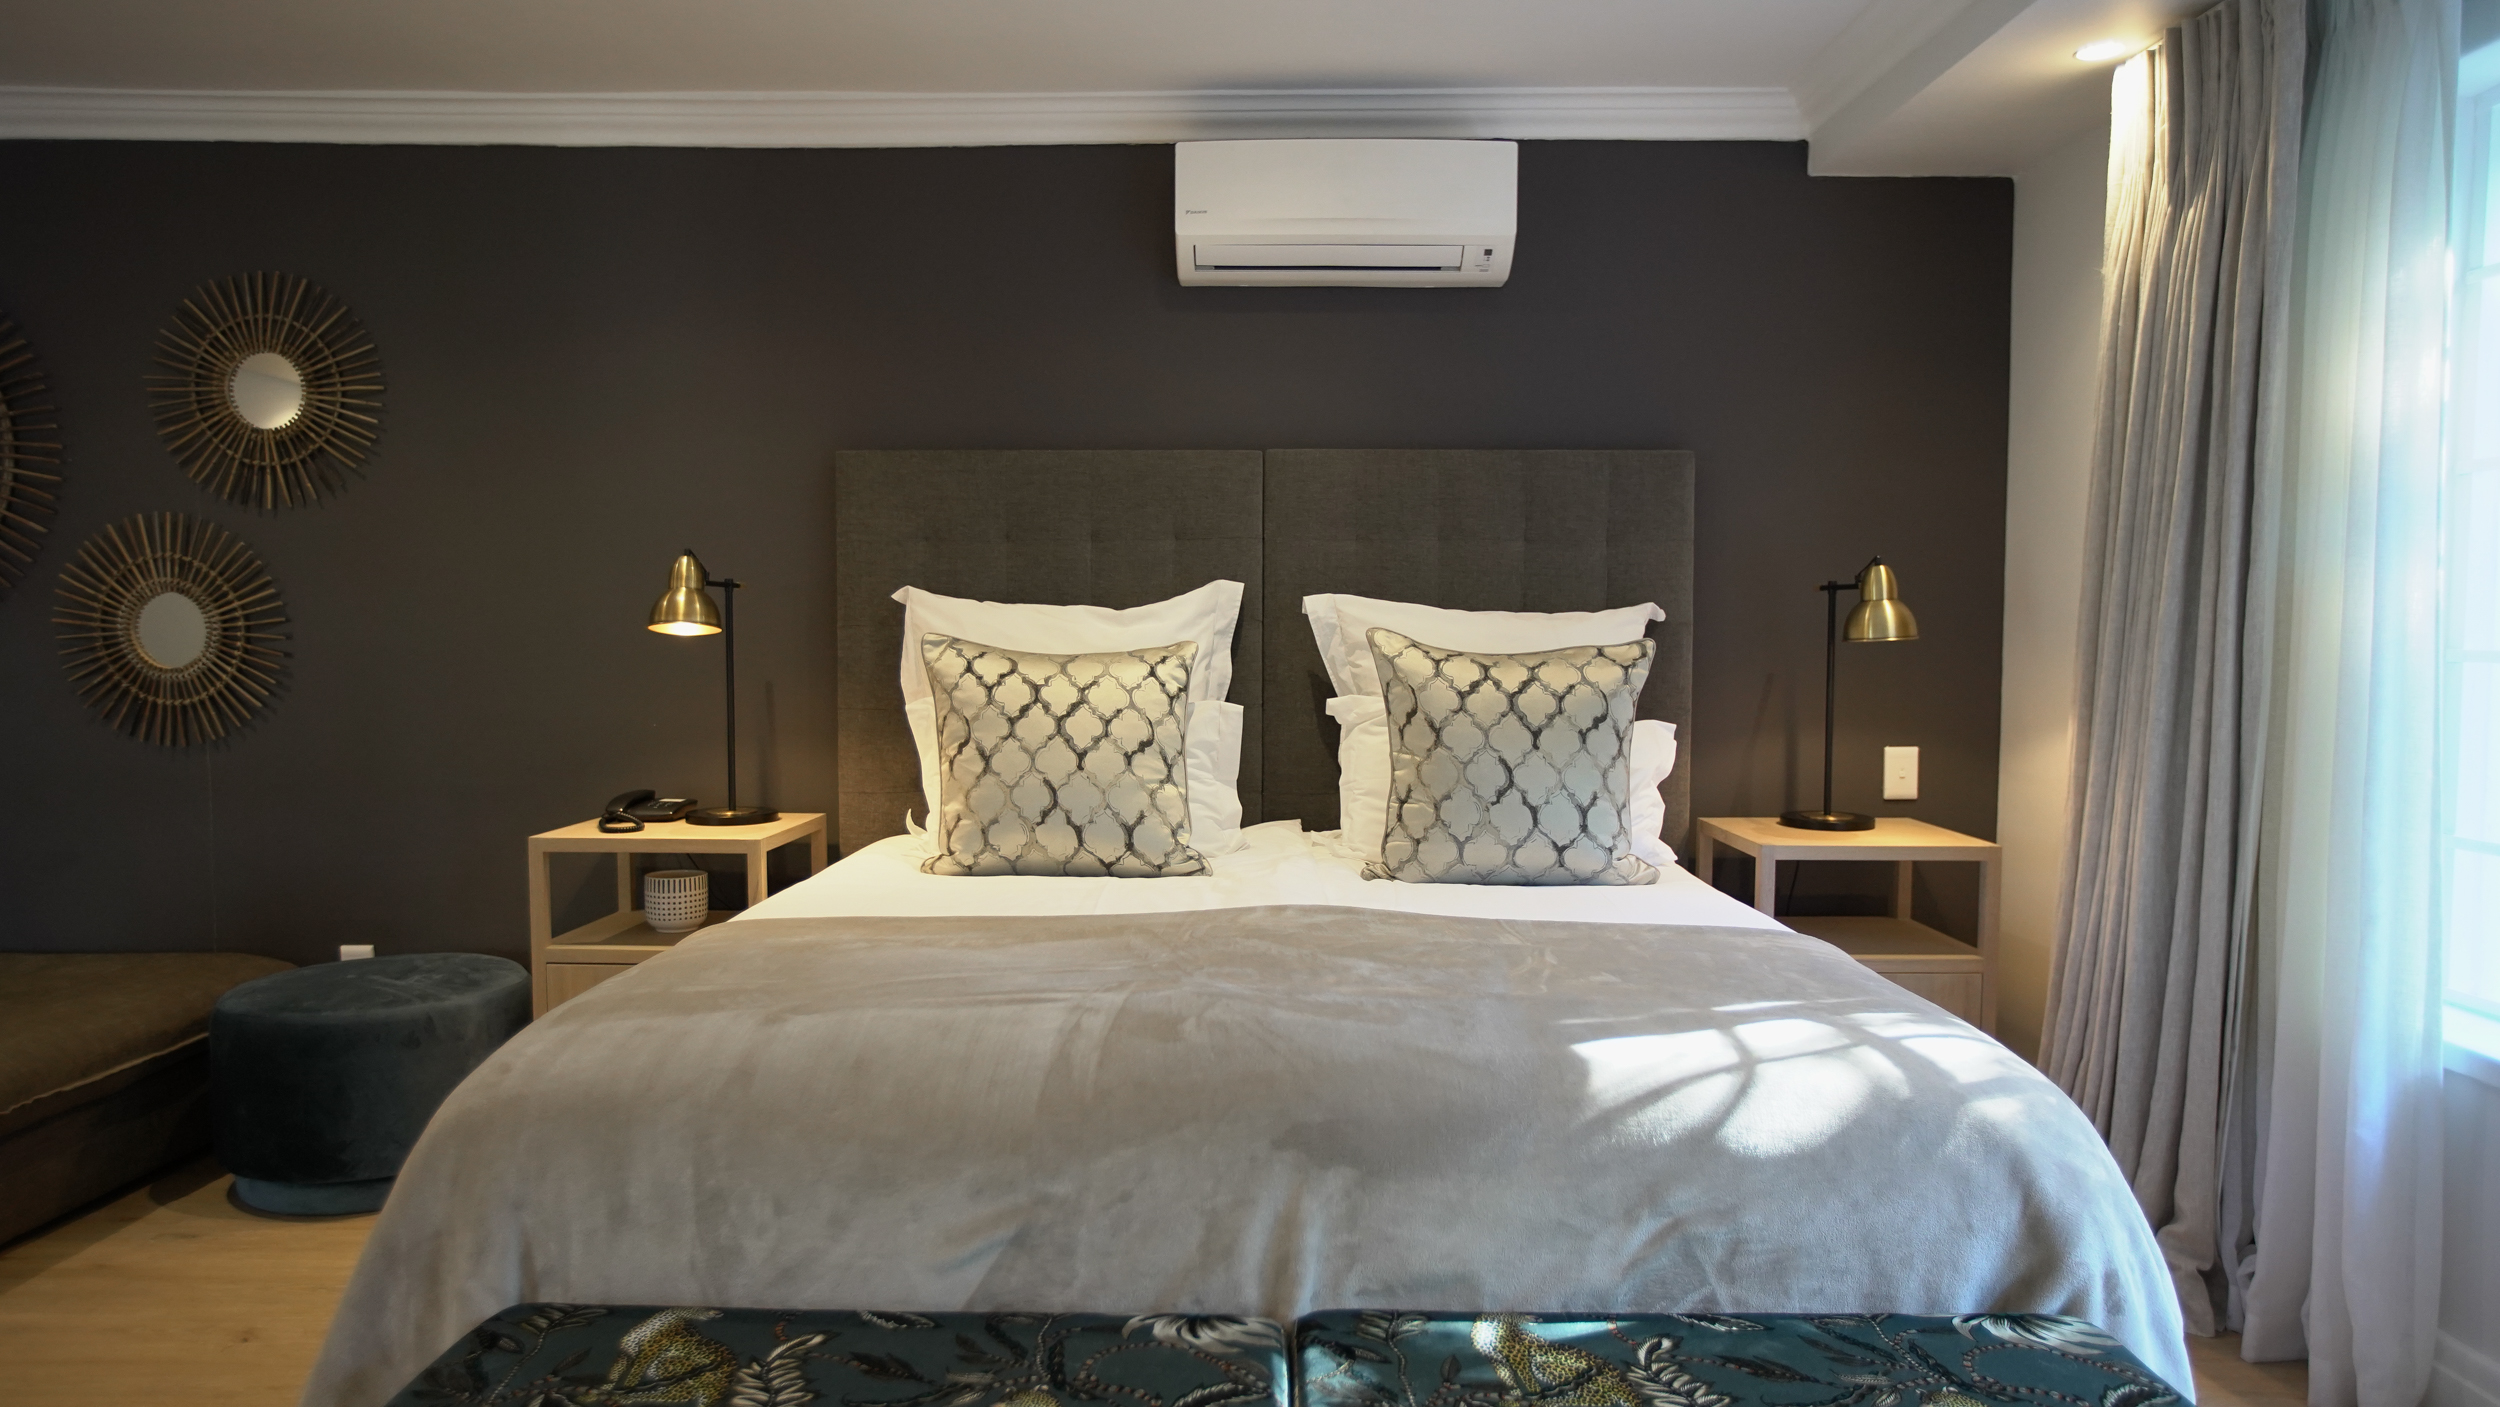 Bed with pillows and side tables with lamps in Manor room bedroom suite at Villa Coloniale